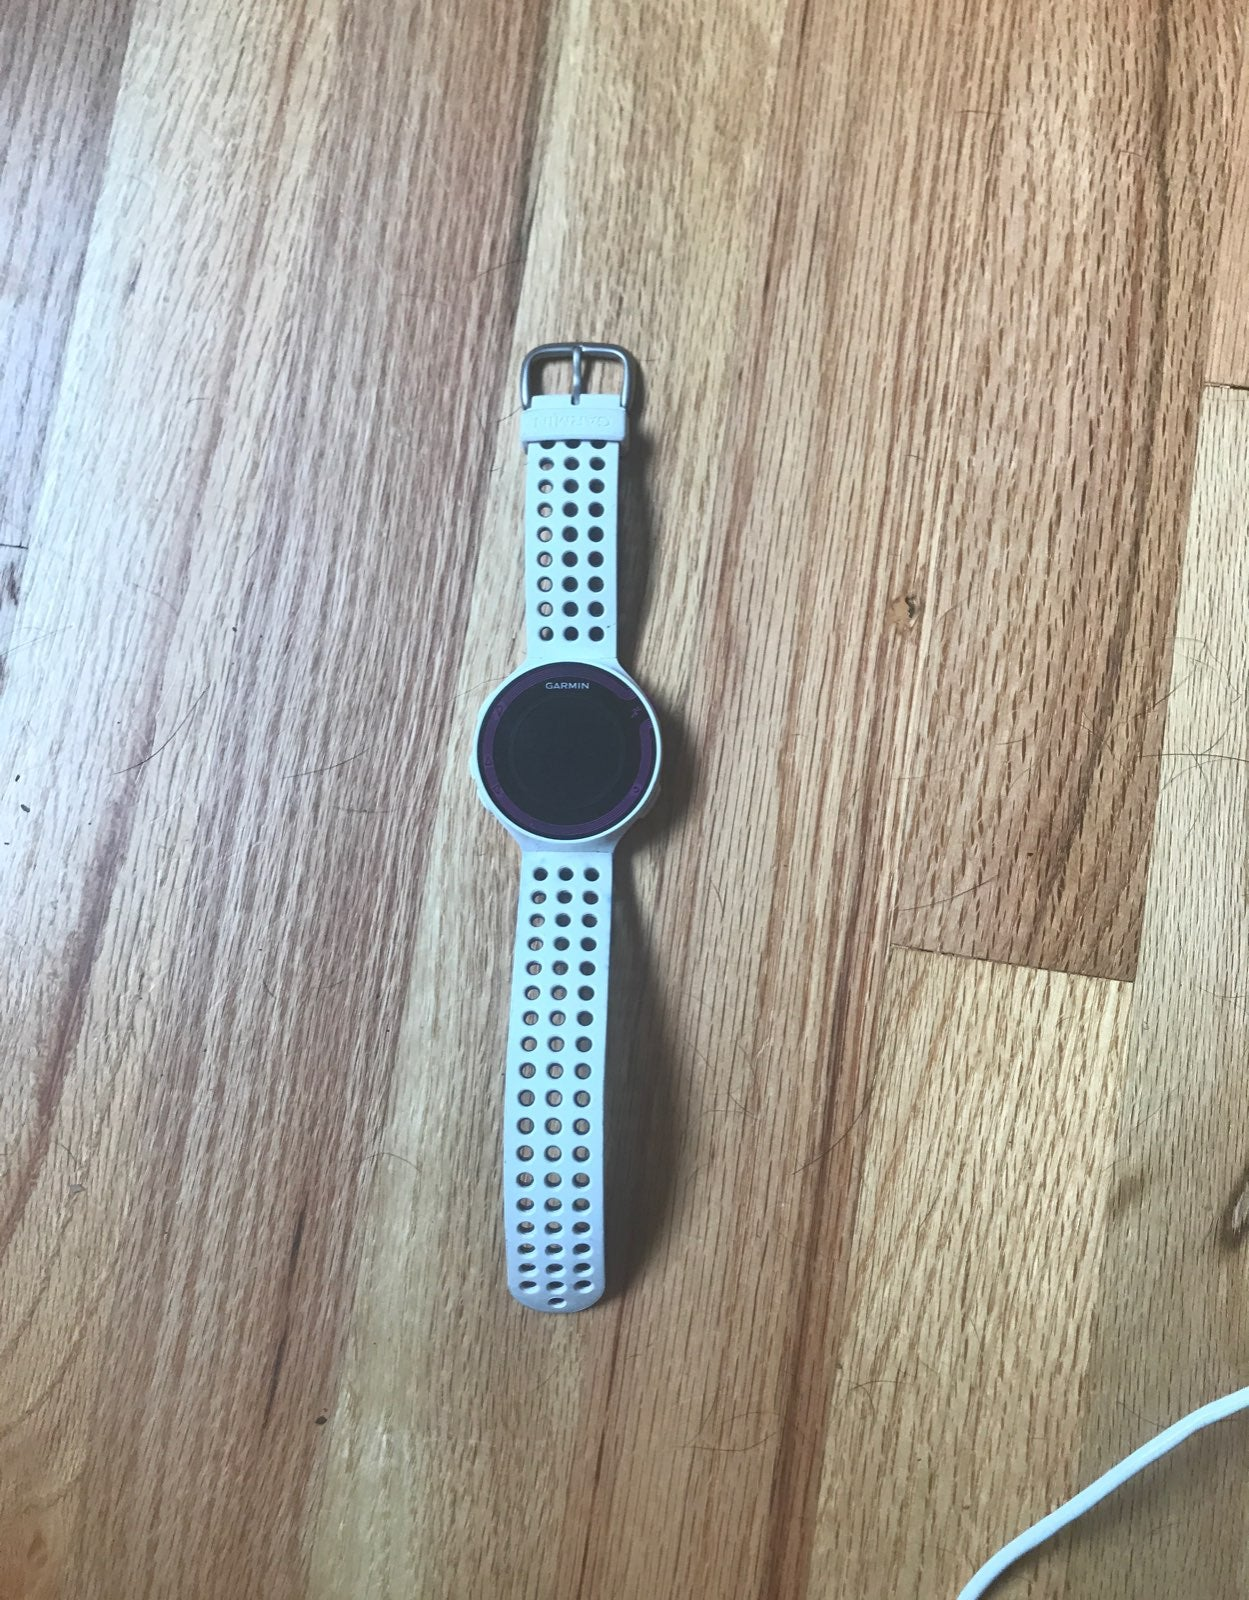 Garmin 220 watch with charging cable